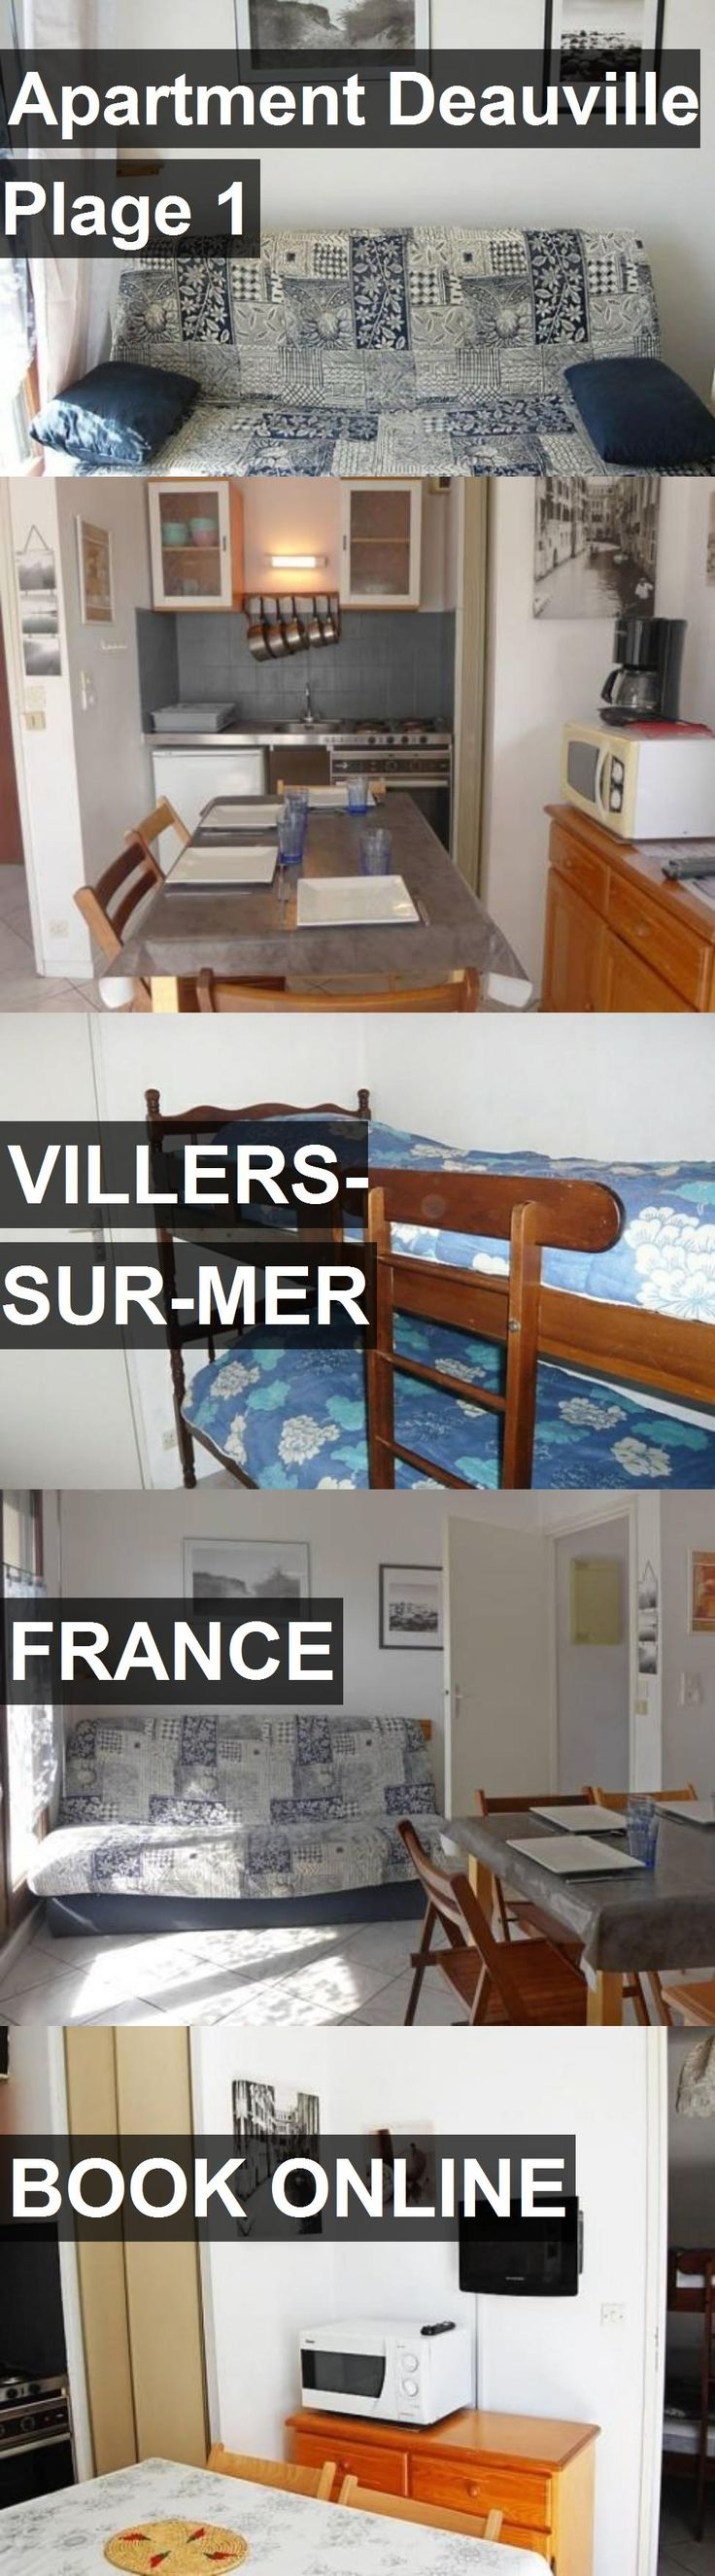 Hotel Apartment Deauville Plage 1 in Villers-sur-Mer, France. For more information, photos, reviews and best prices please follow the link. #France #Villers-sur-Mer #ApartmentDeauvillePlage1 #hotel #travel #vacation